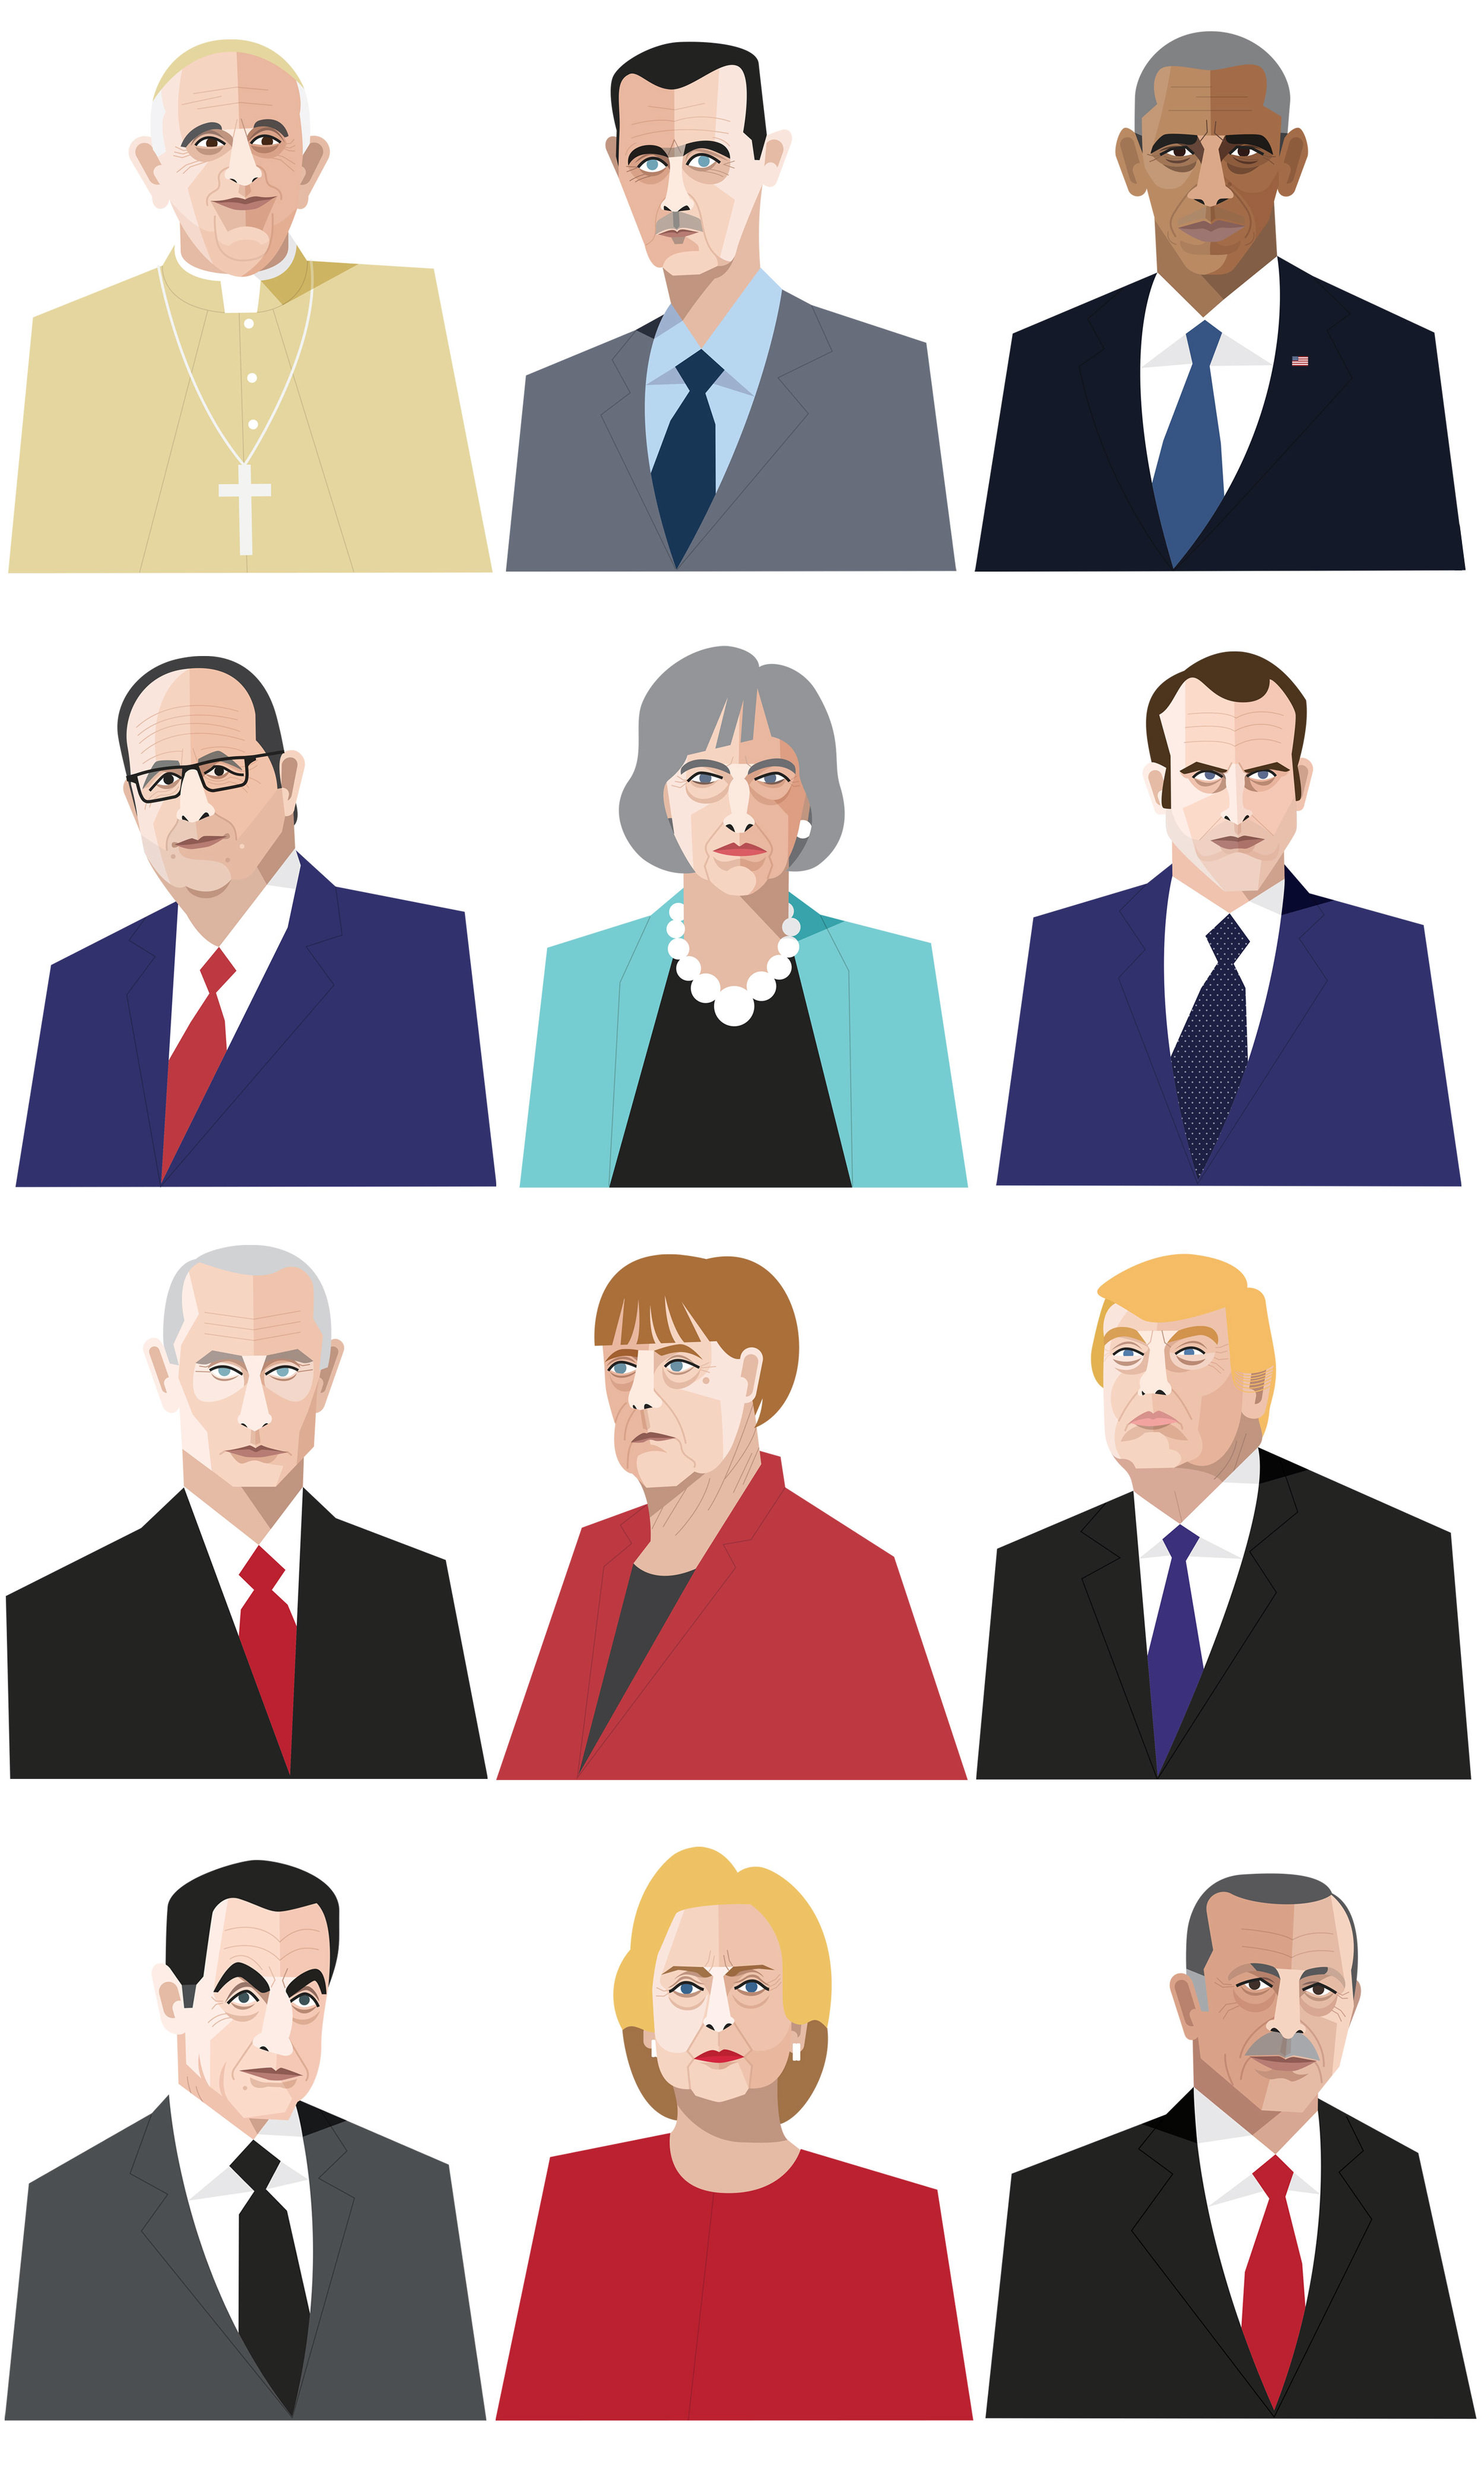 Freelance illustrator dale edwin murray liberation newspaper portraits france french illustration